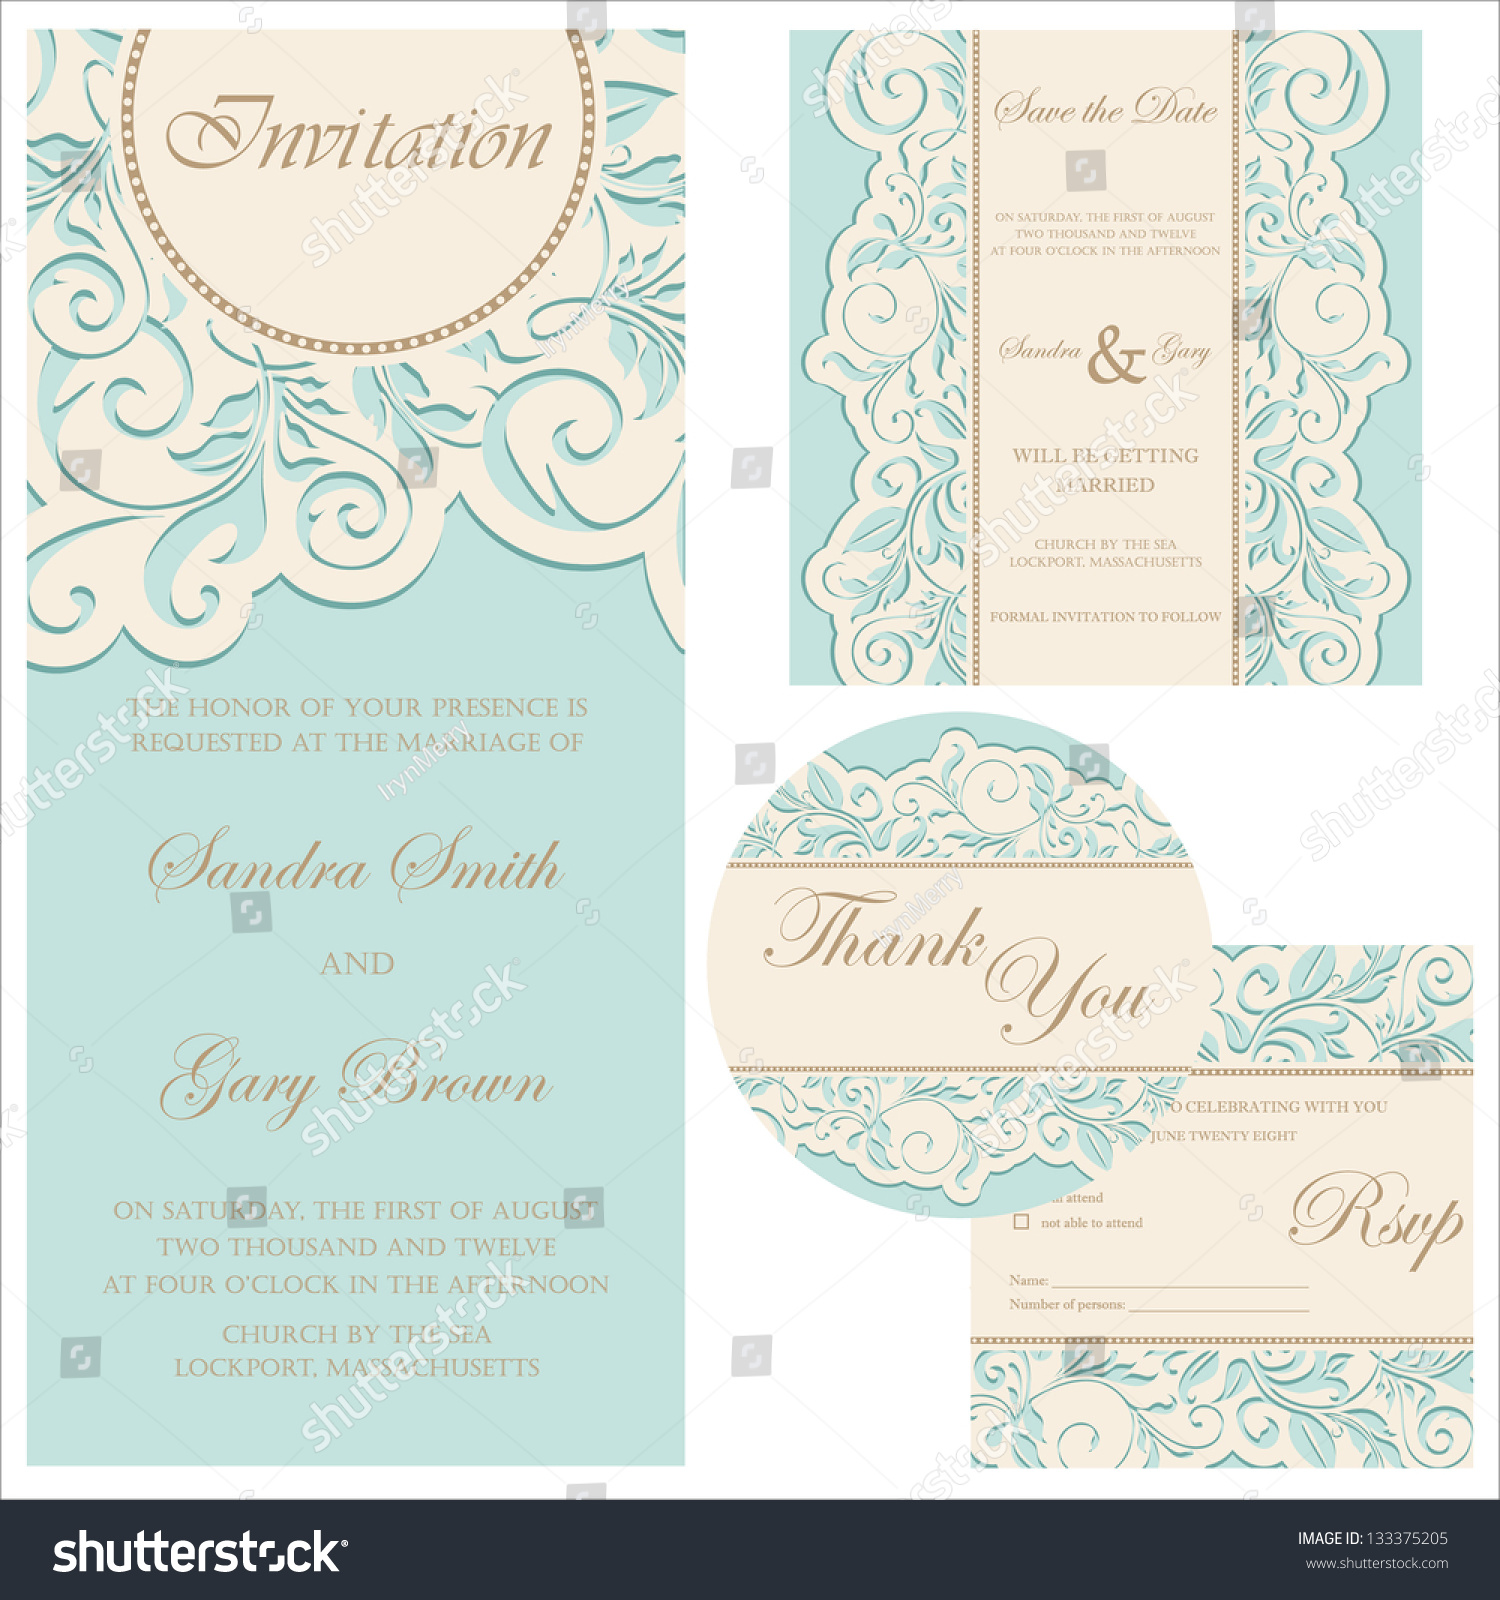 dating invitation For couples who are dating- do i address there invitations seperately or do they just add a guest to there response card.